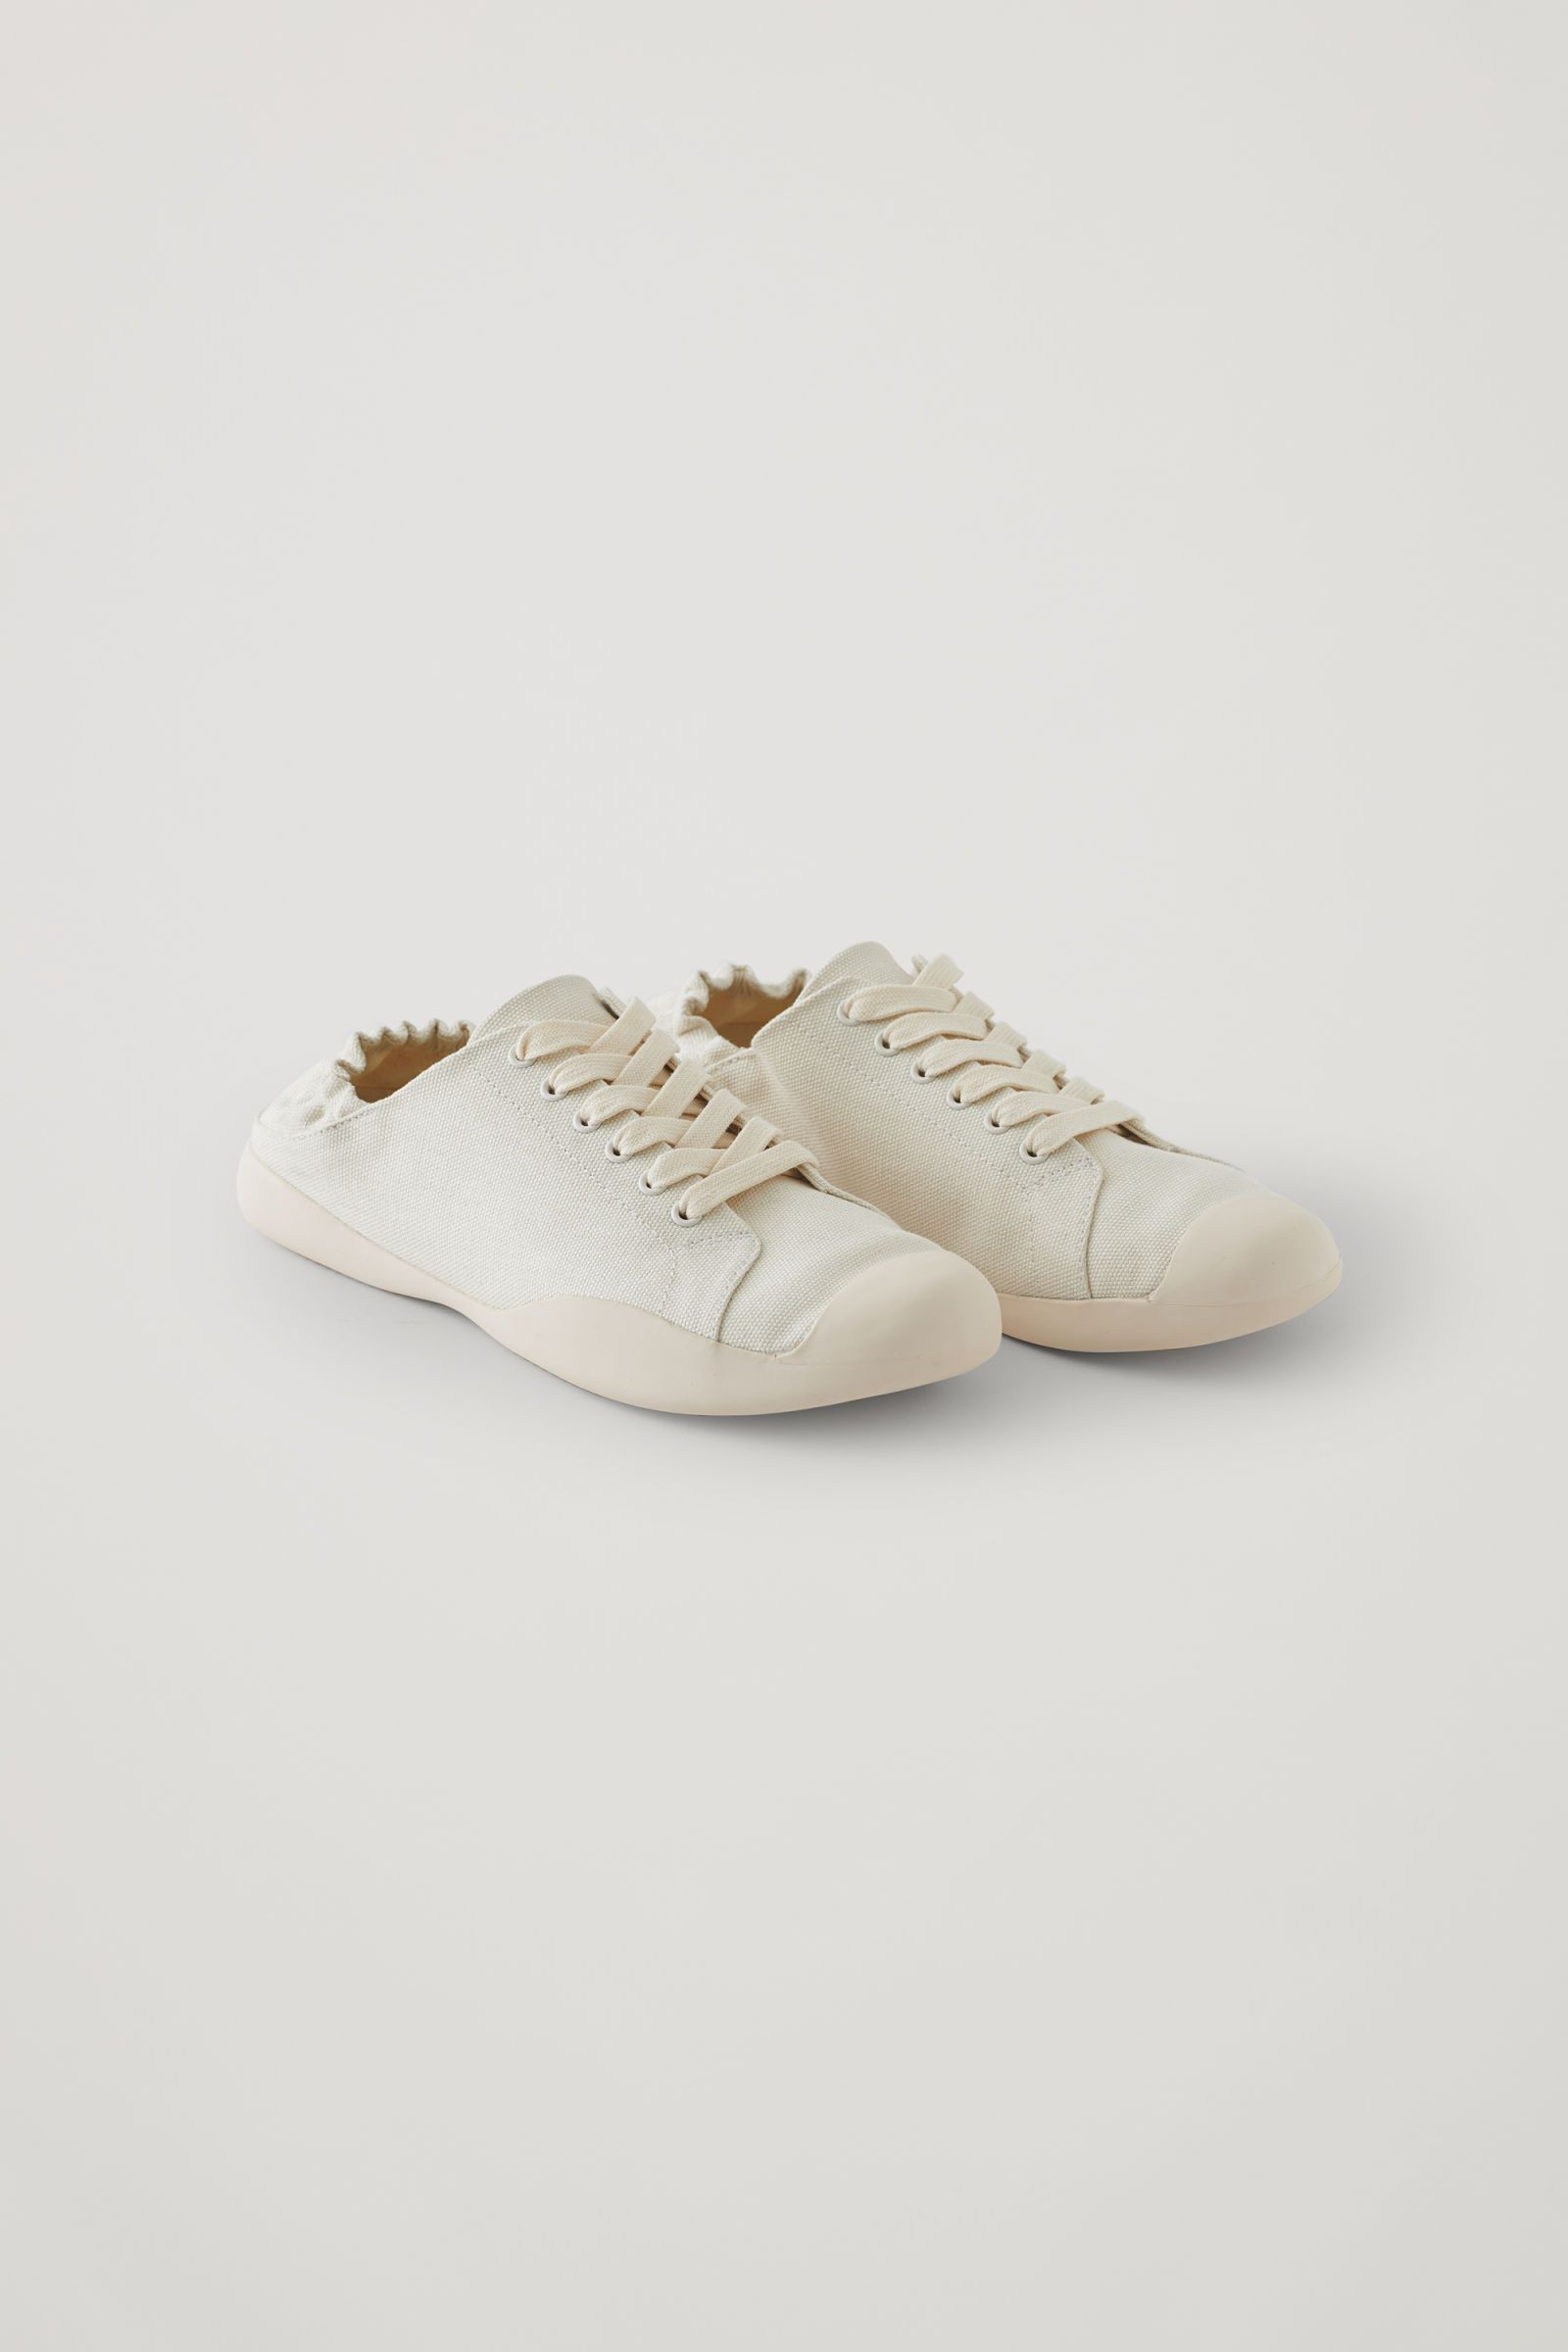 ORGANIC COTTON CANVAS SNEAKERS in 2020